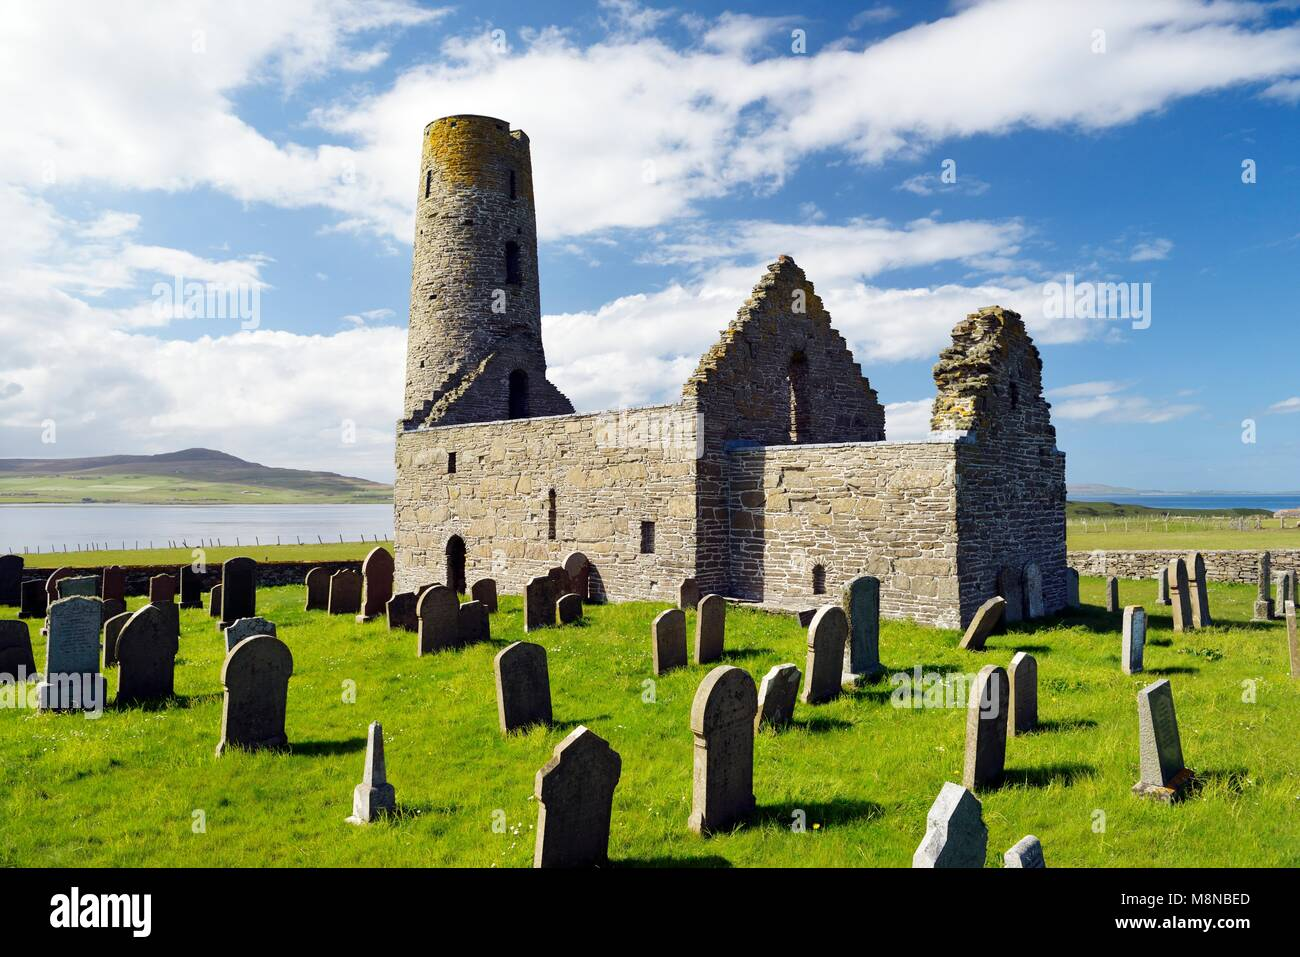 Saint St. Magnus Church, Egilsay, Orkney Islands, Scotland. 12th C Viking Norse round bell-tower tower Christian Stock Photo